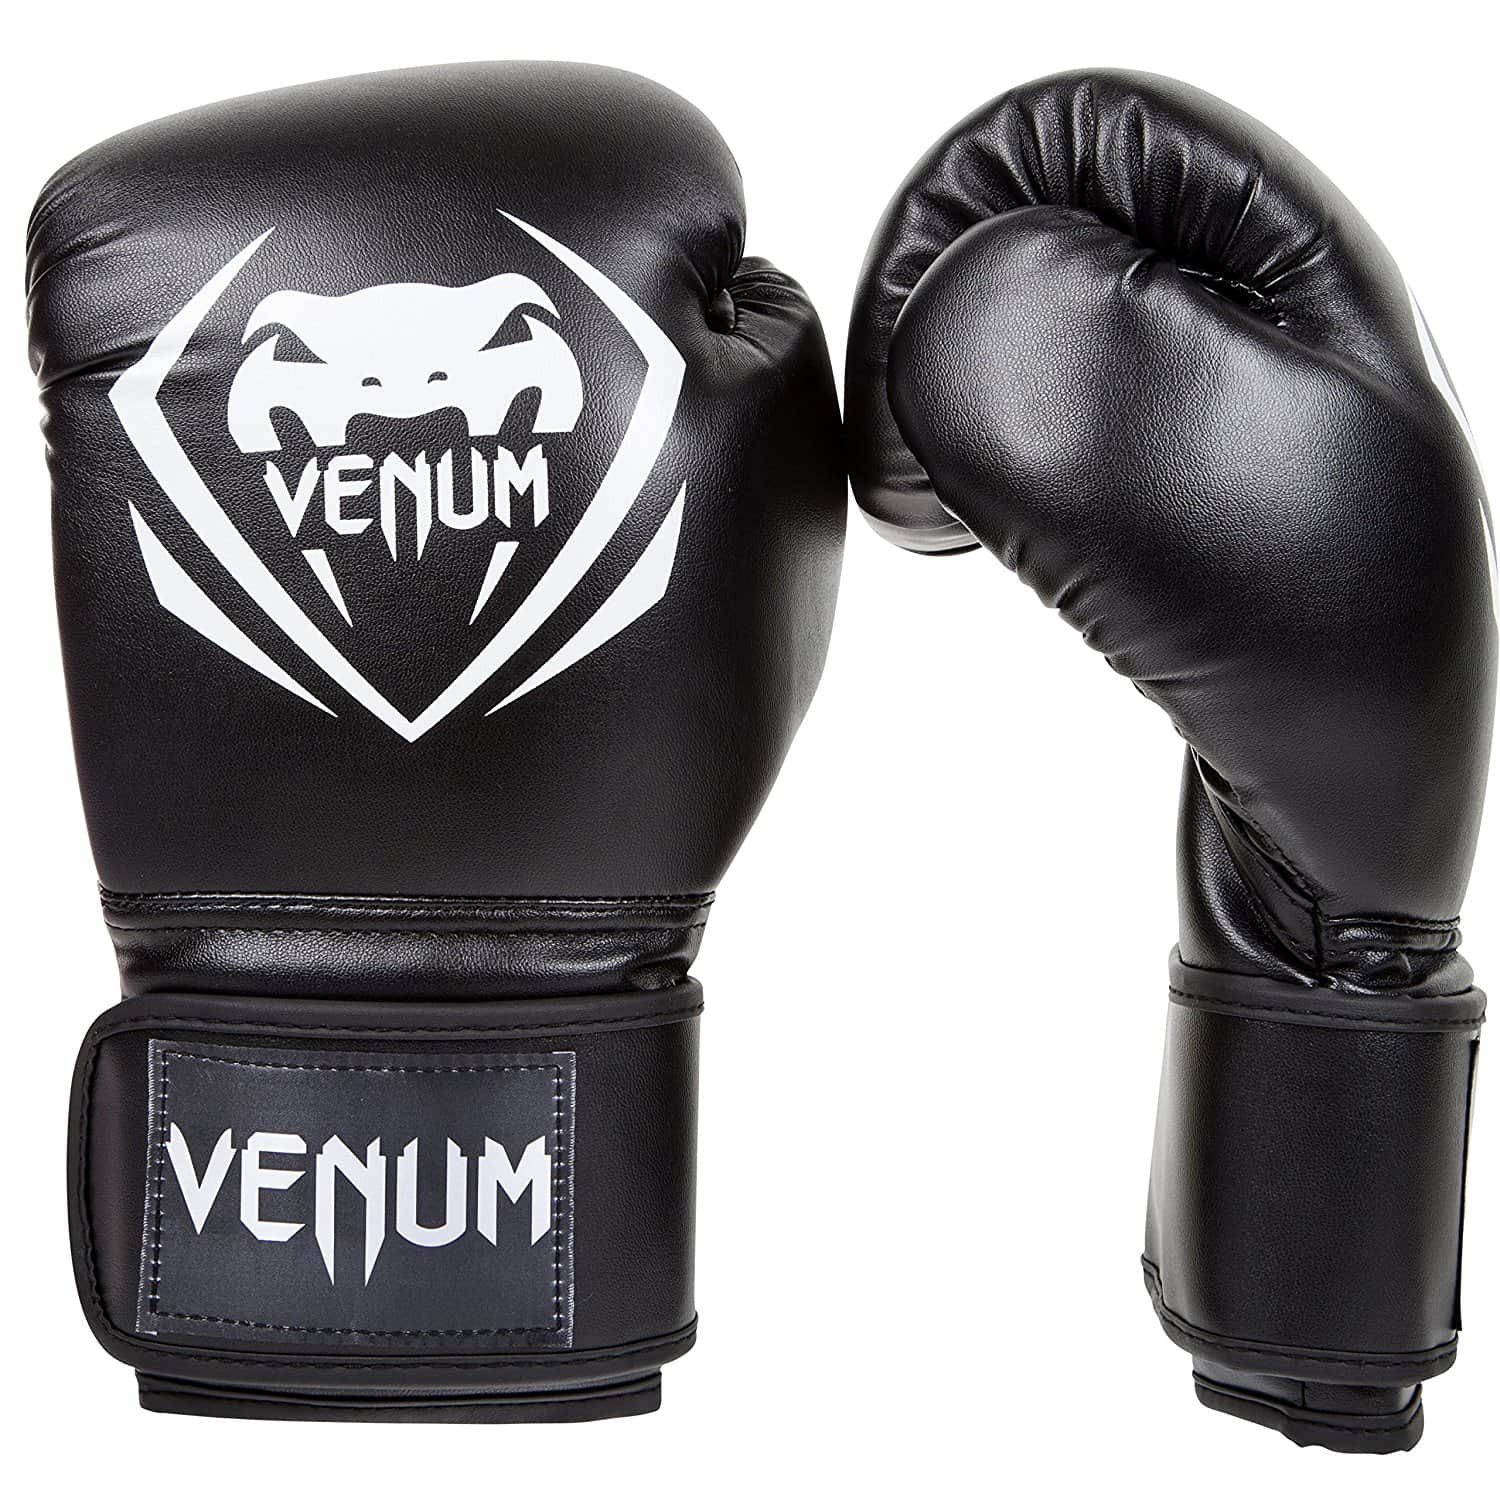 Venum contender gloves